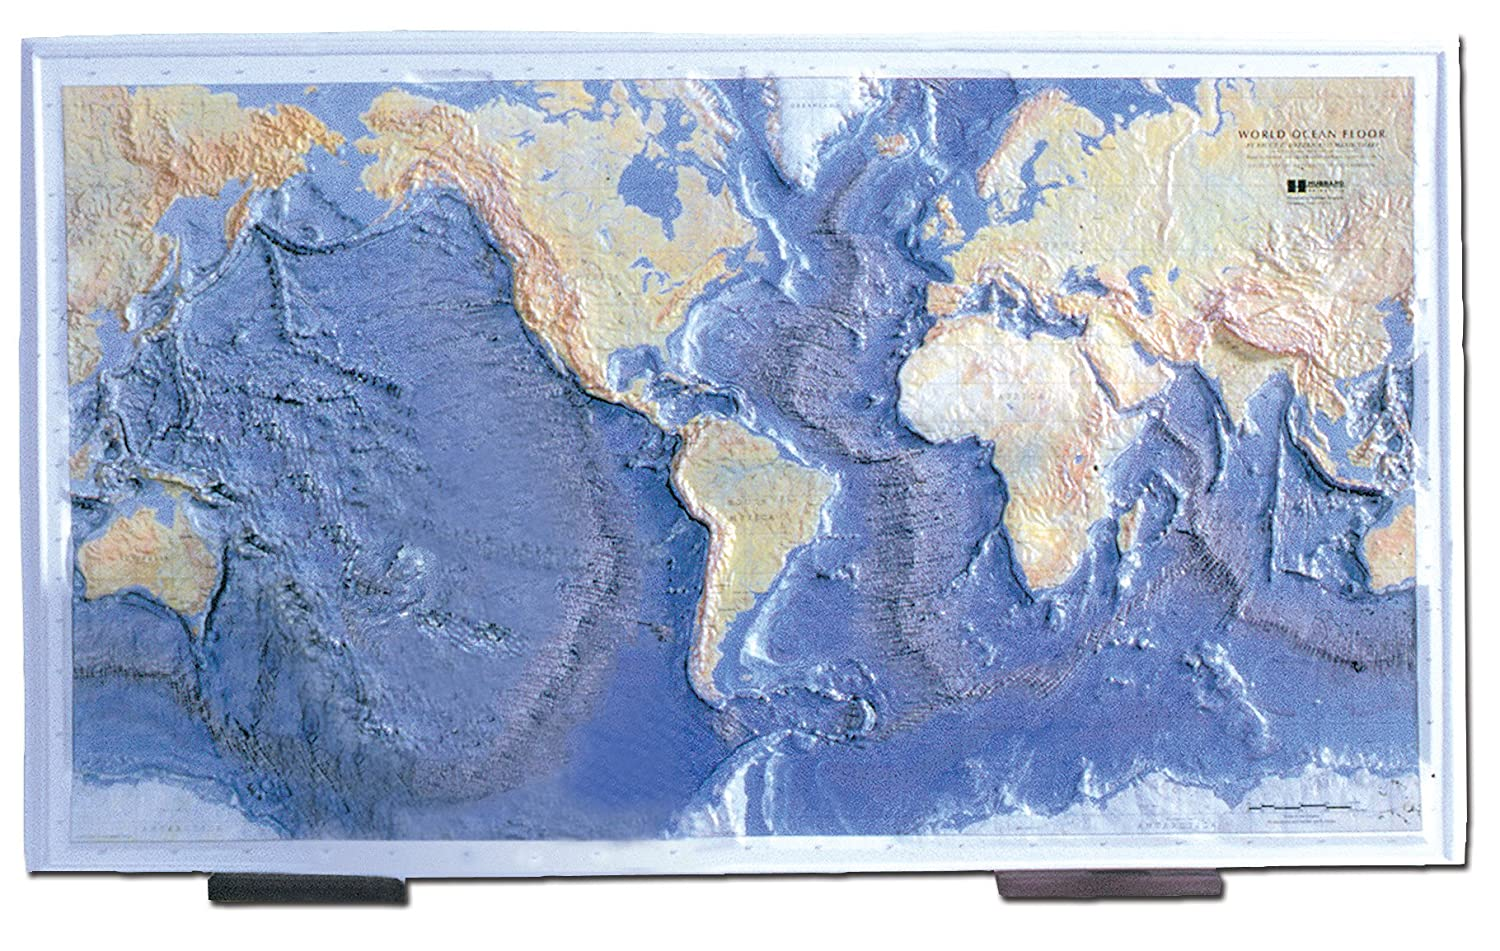 Amazoncom Hubbard Scientific Ocean Floor Raised Relief Map - Us raised relief topographical map